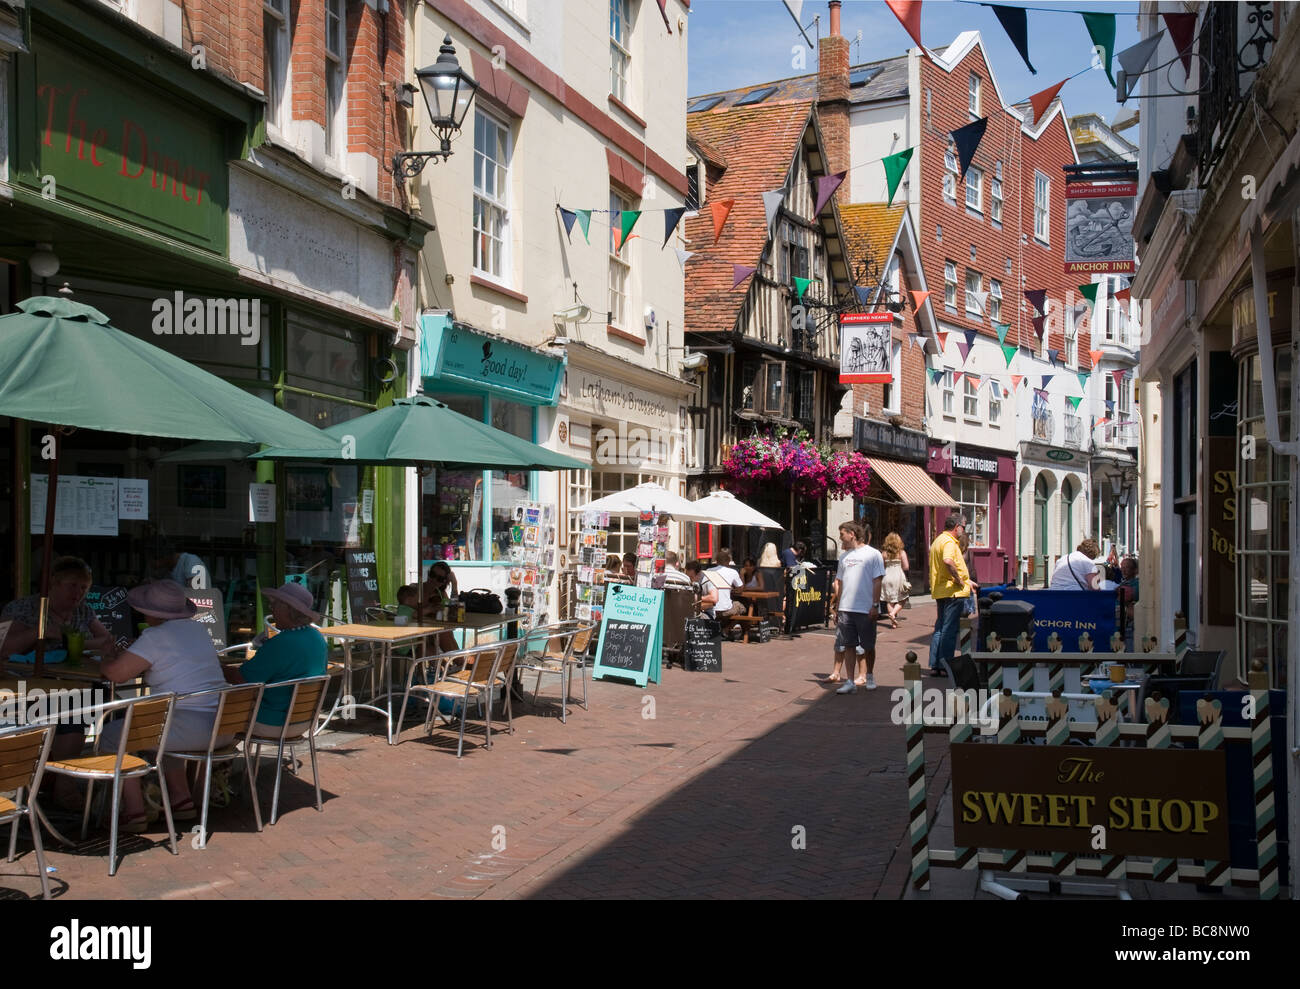 Shops and pavement cafes in George Street, Hastings Old Town, England - Stock Image